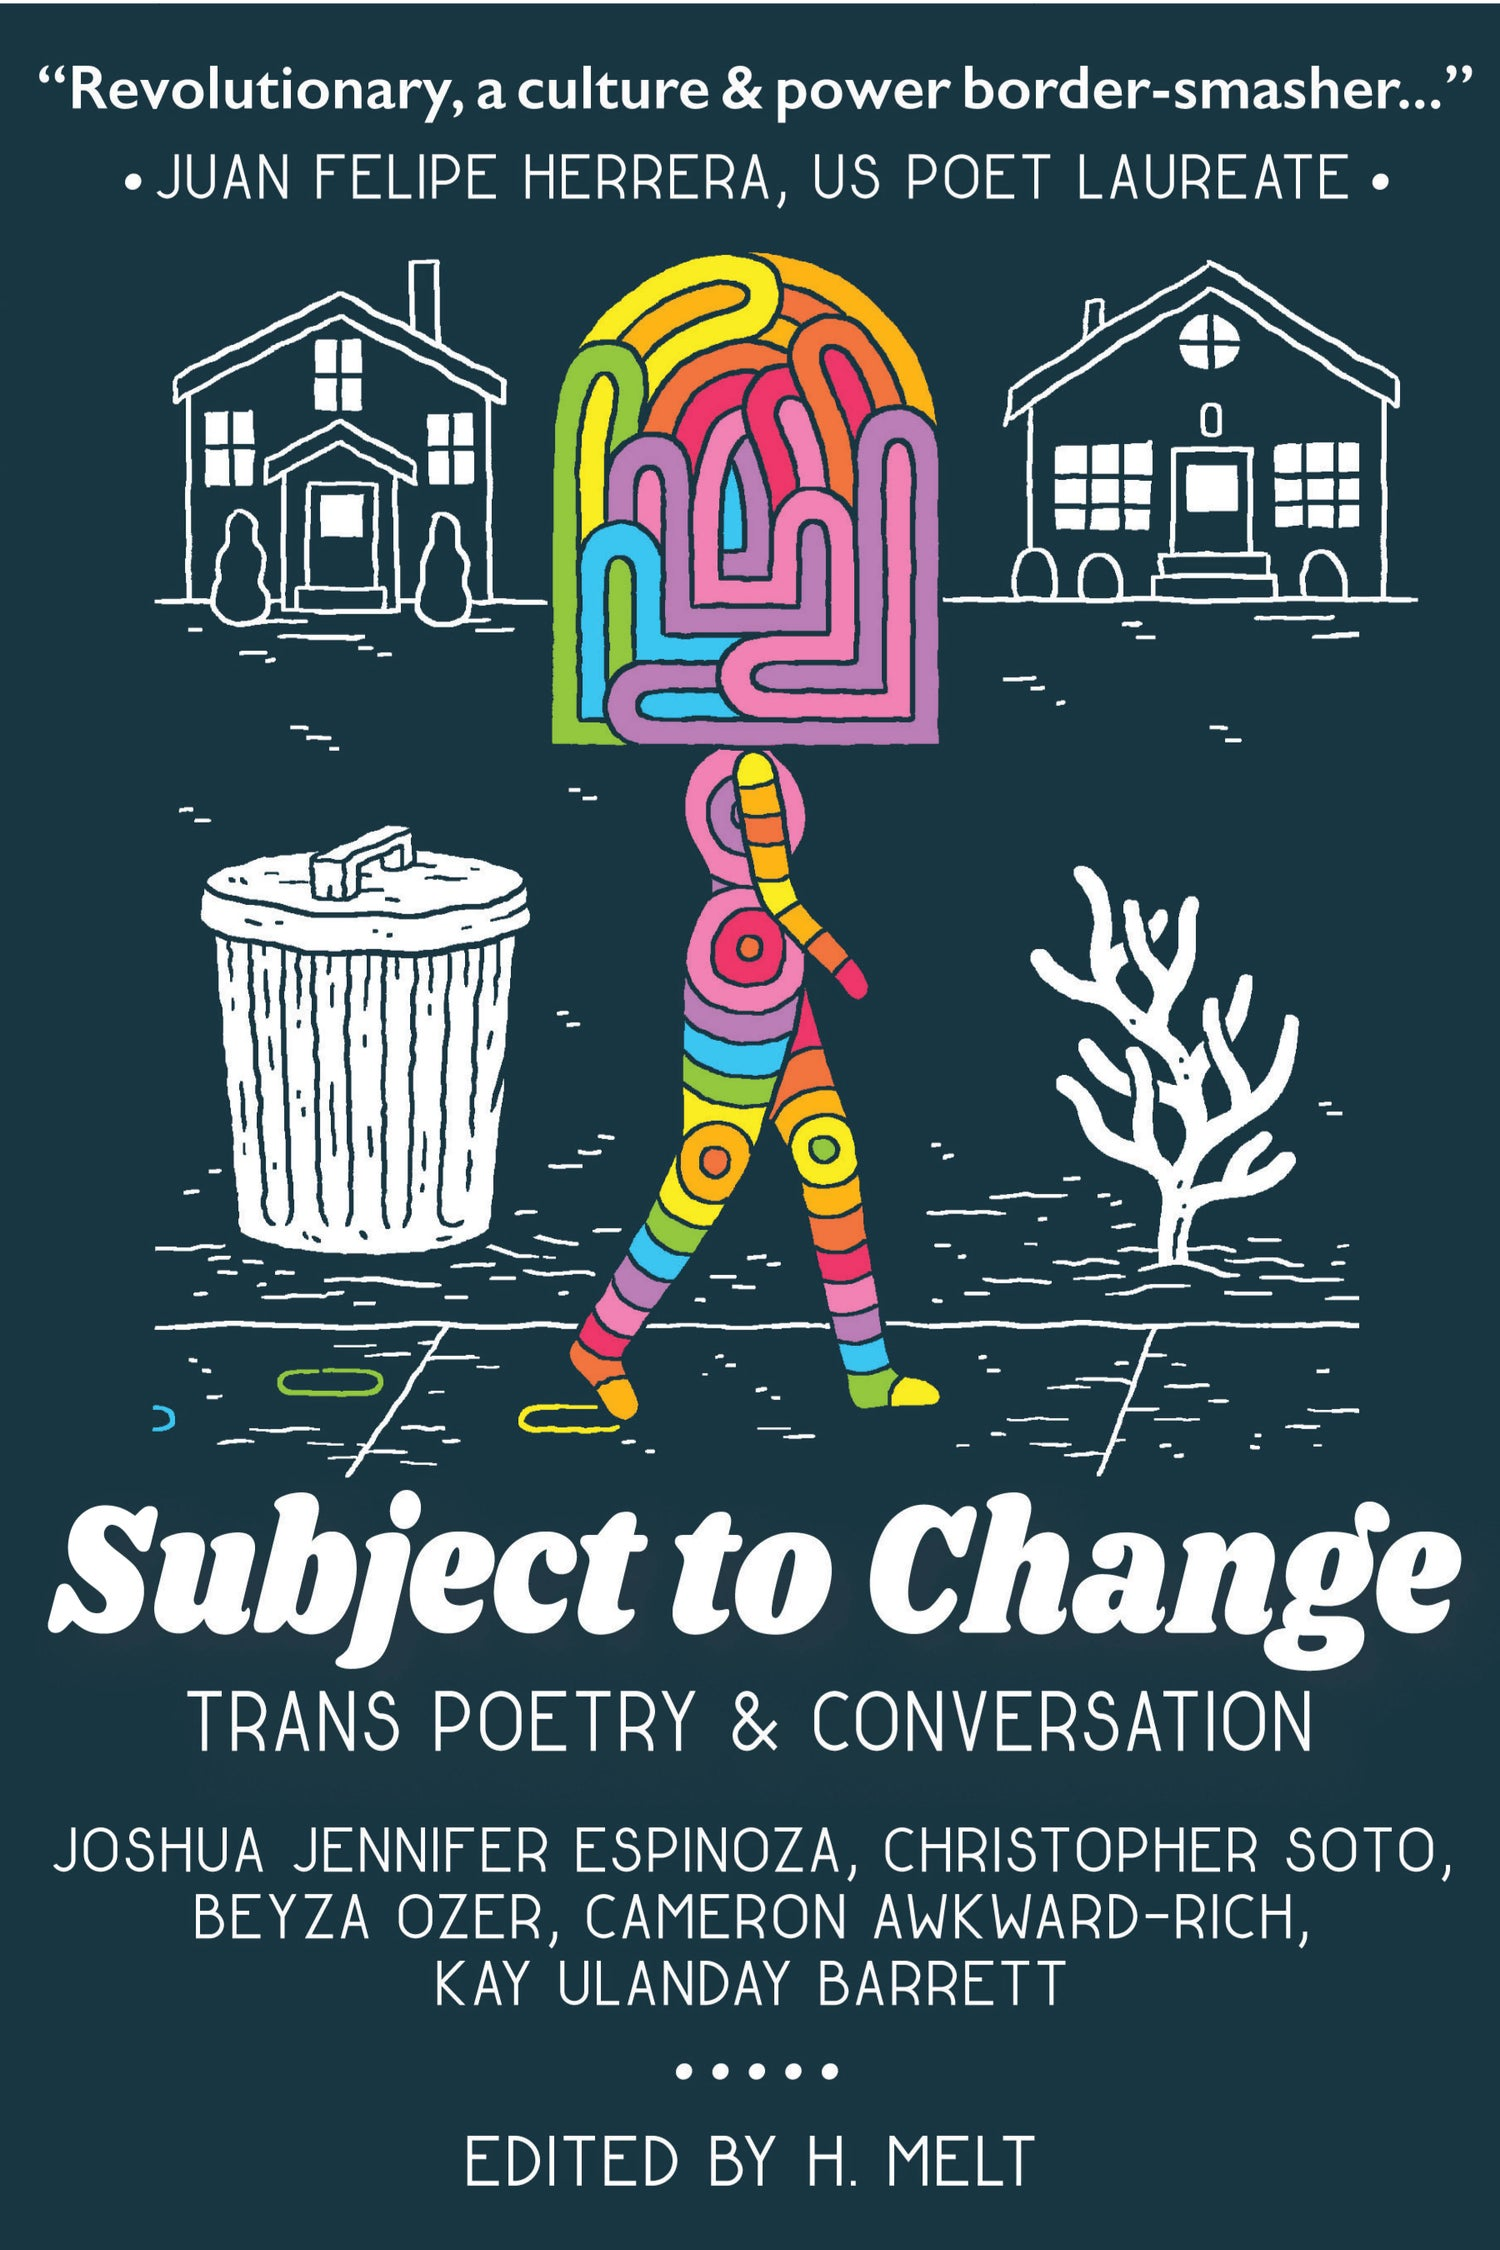 Image of Subject to Change: Trans Poetry & Conversation